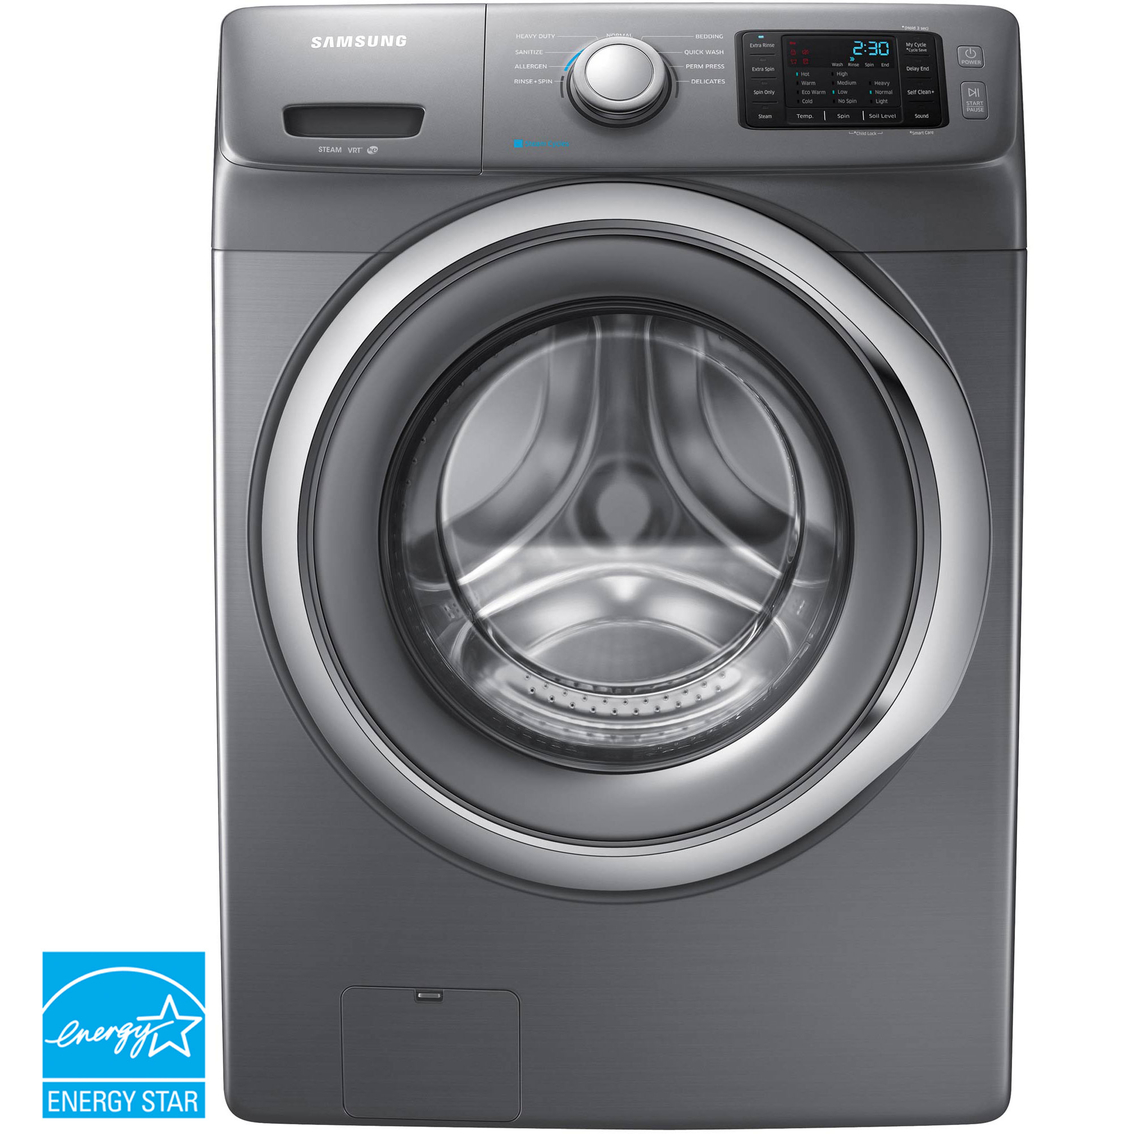 Samsung 42 cu ft front load washer washers home samsung 42 cu ft front load washer biocorpaavc Images